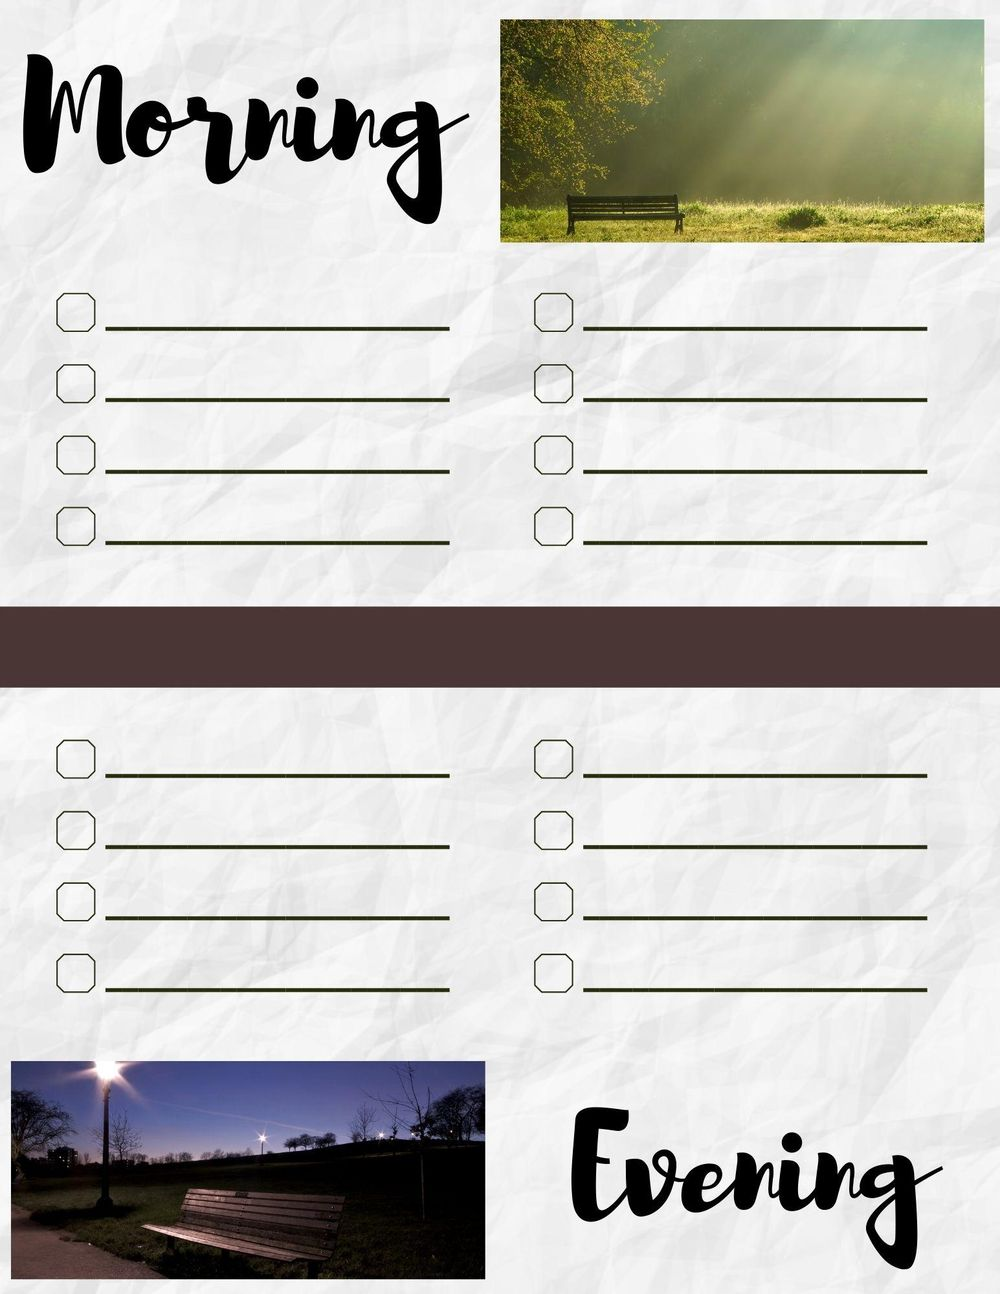 1st Checklist Designs Created - image 1 - student project